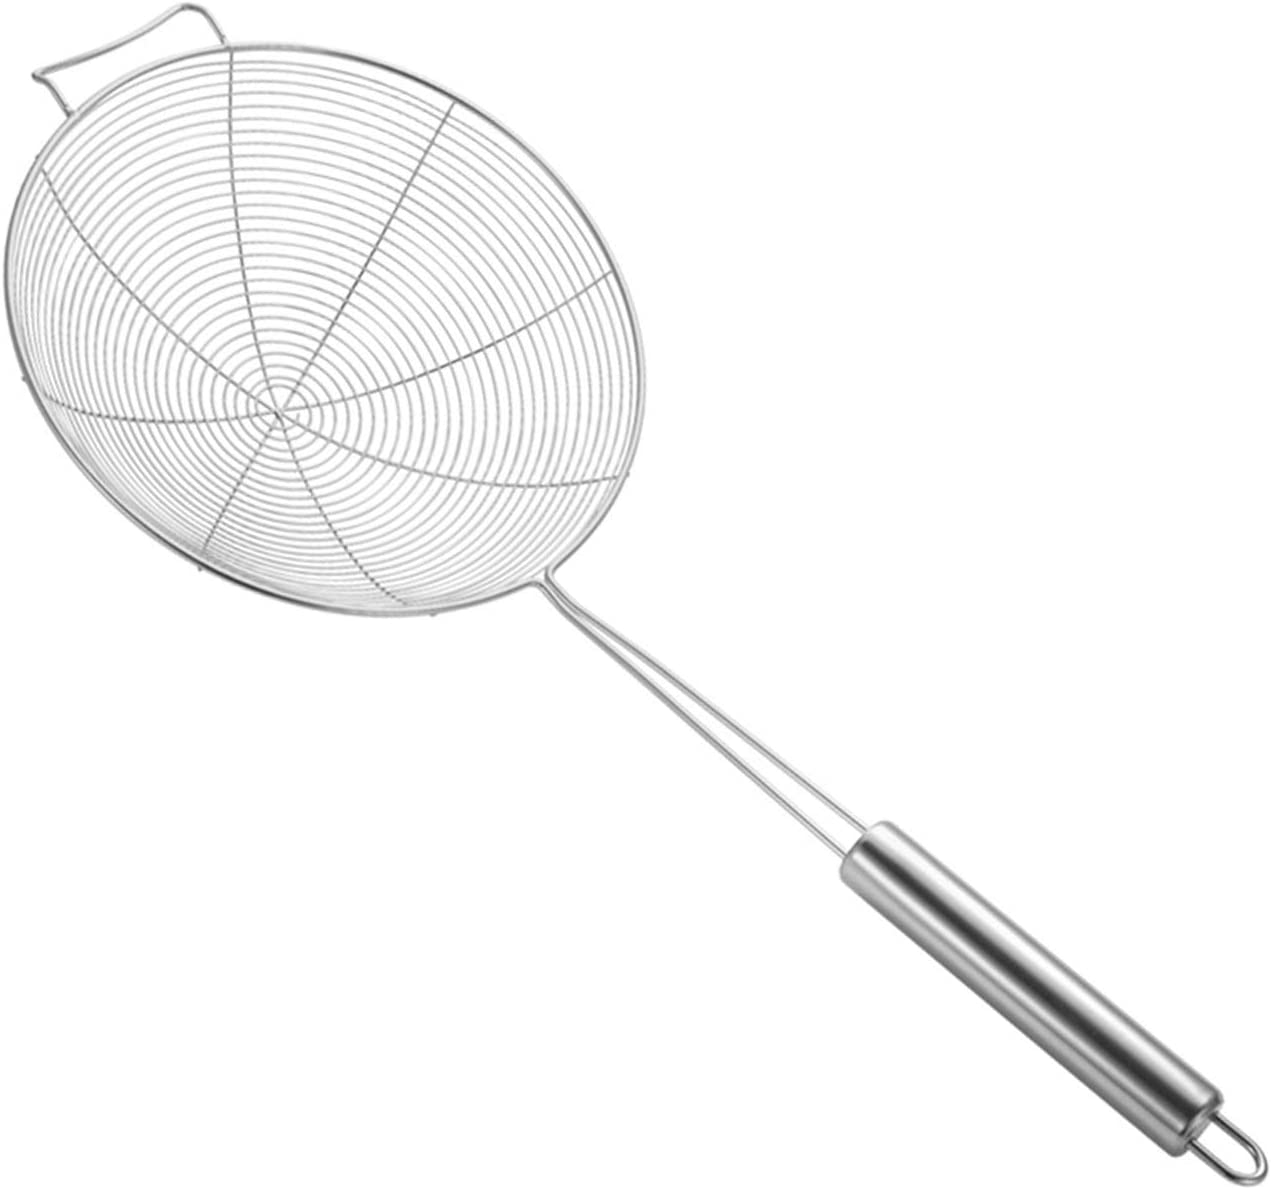 LOANPE 15-inch Stainless Steel Skimmer Spider Strainer,Strainer Skimmer Ladle with Spiral Mesh, Used to scoop up pasta, Noodle,vegetables hot pot Fried chicken wings French fries and other Fried food